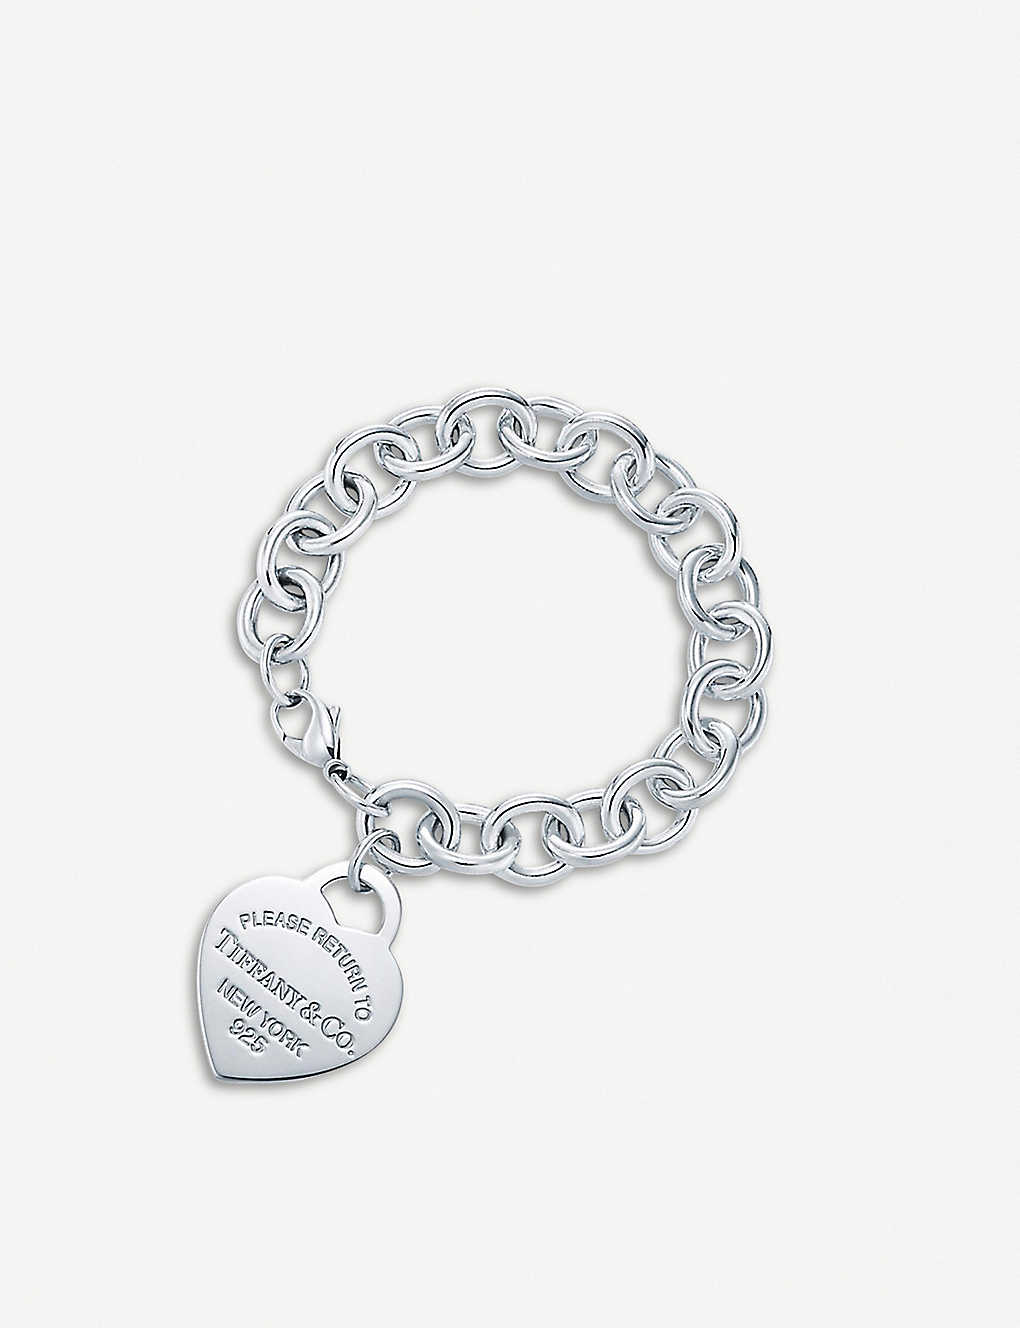 19ed51e93 TIFFANY & CO - Return to Tiffany™ Sterling Silver Heart Tag Bracelet ...